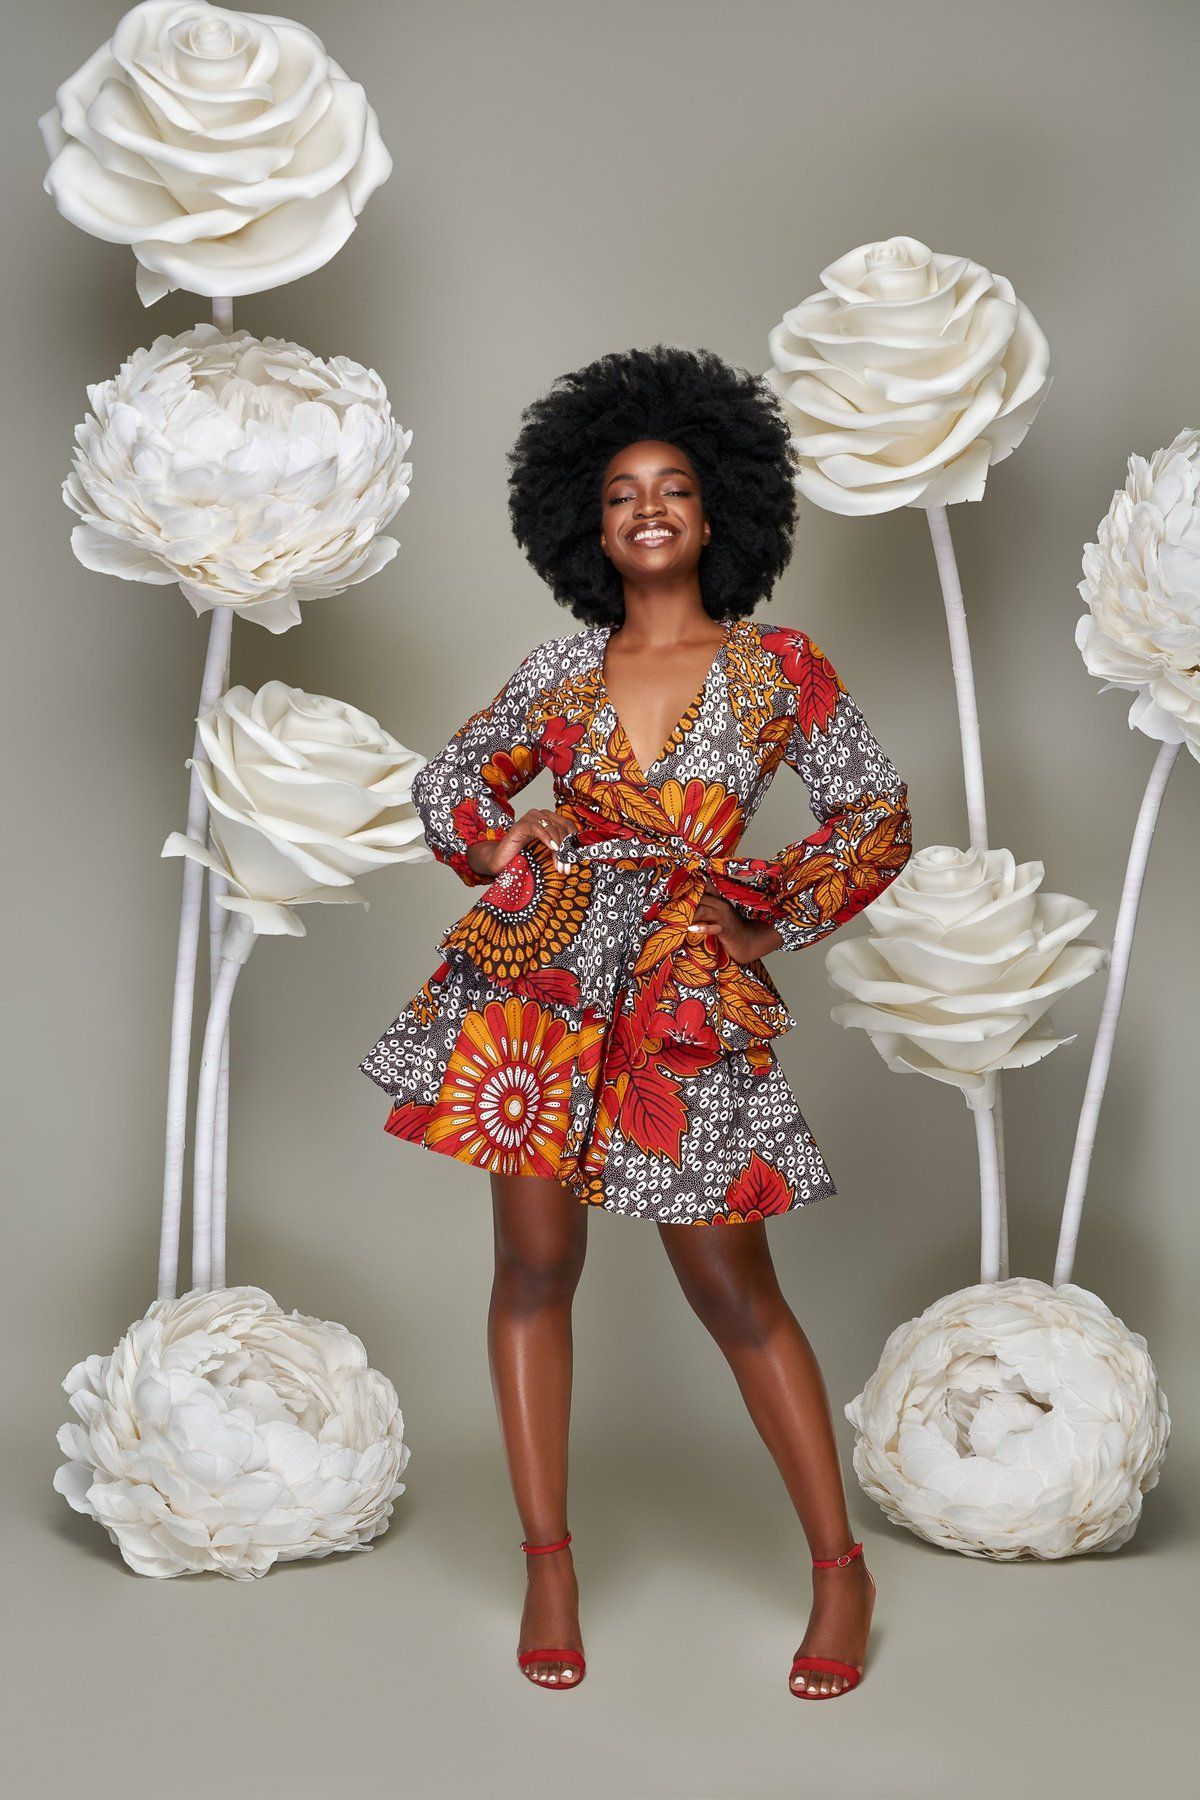 45 Fashionable African Dresses Of 2020 Ankara Dresses Of The Year African Fashion Modern African Clothing African Fashion Designers